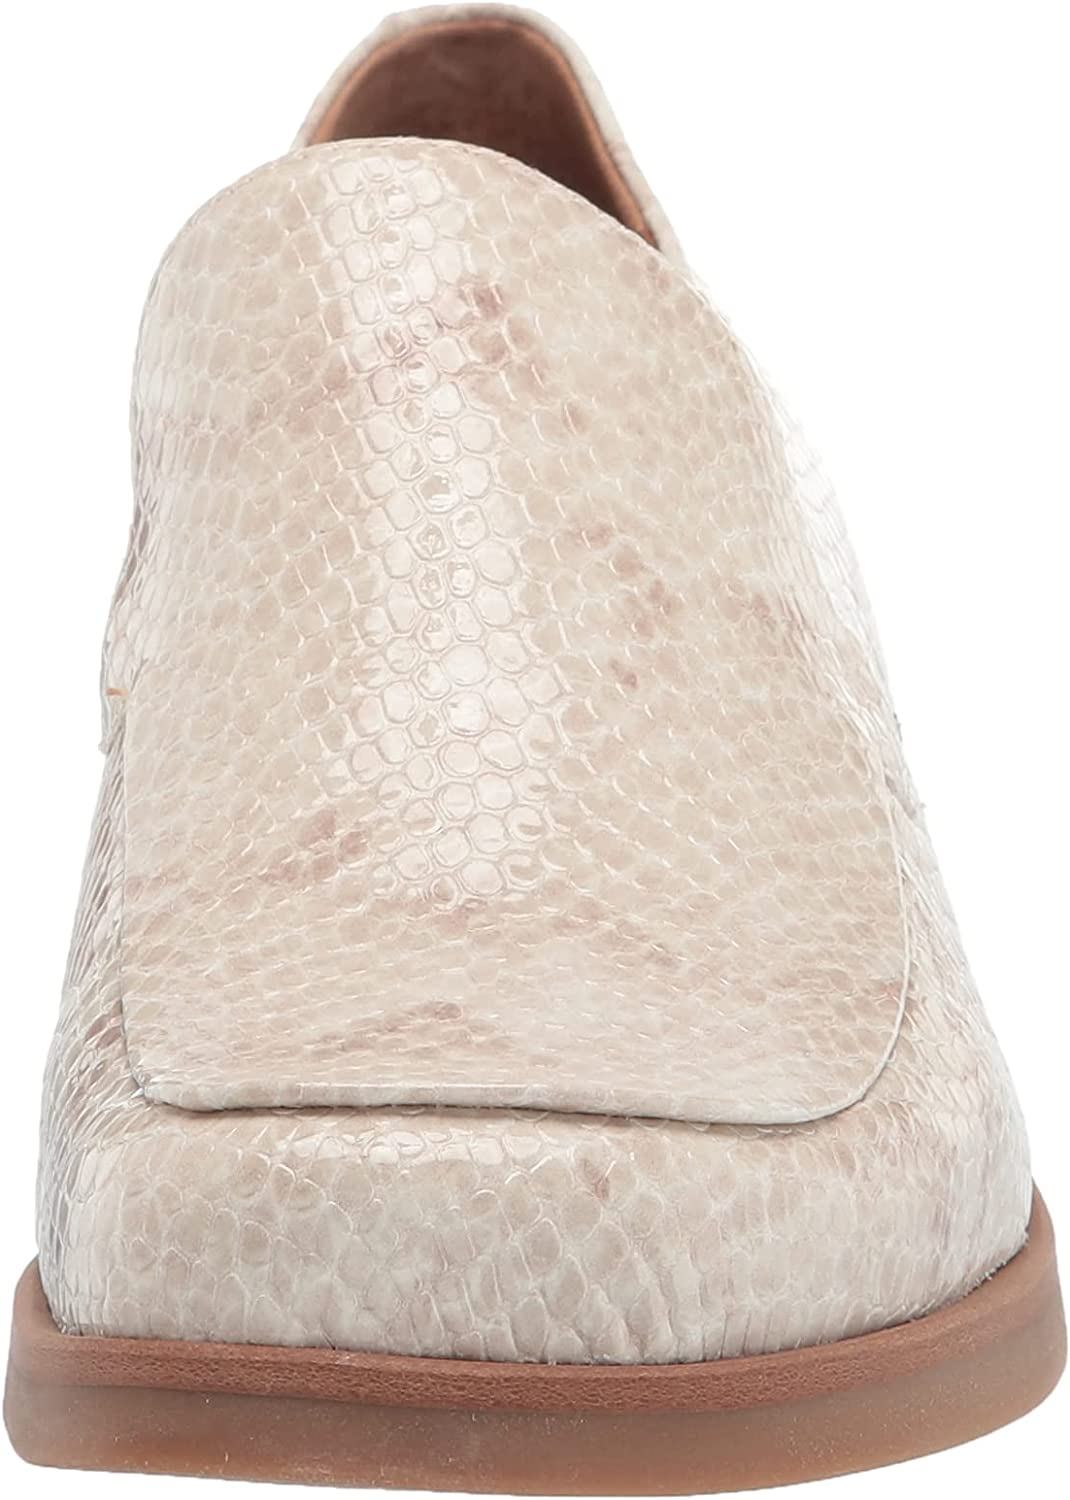 Details about  /Women/'s Shoes Loafers Slip On 30U Born For Italian Craft 5038D White Leather